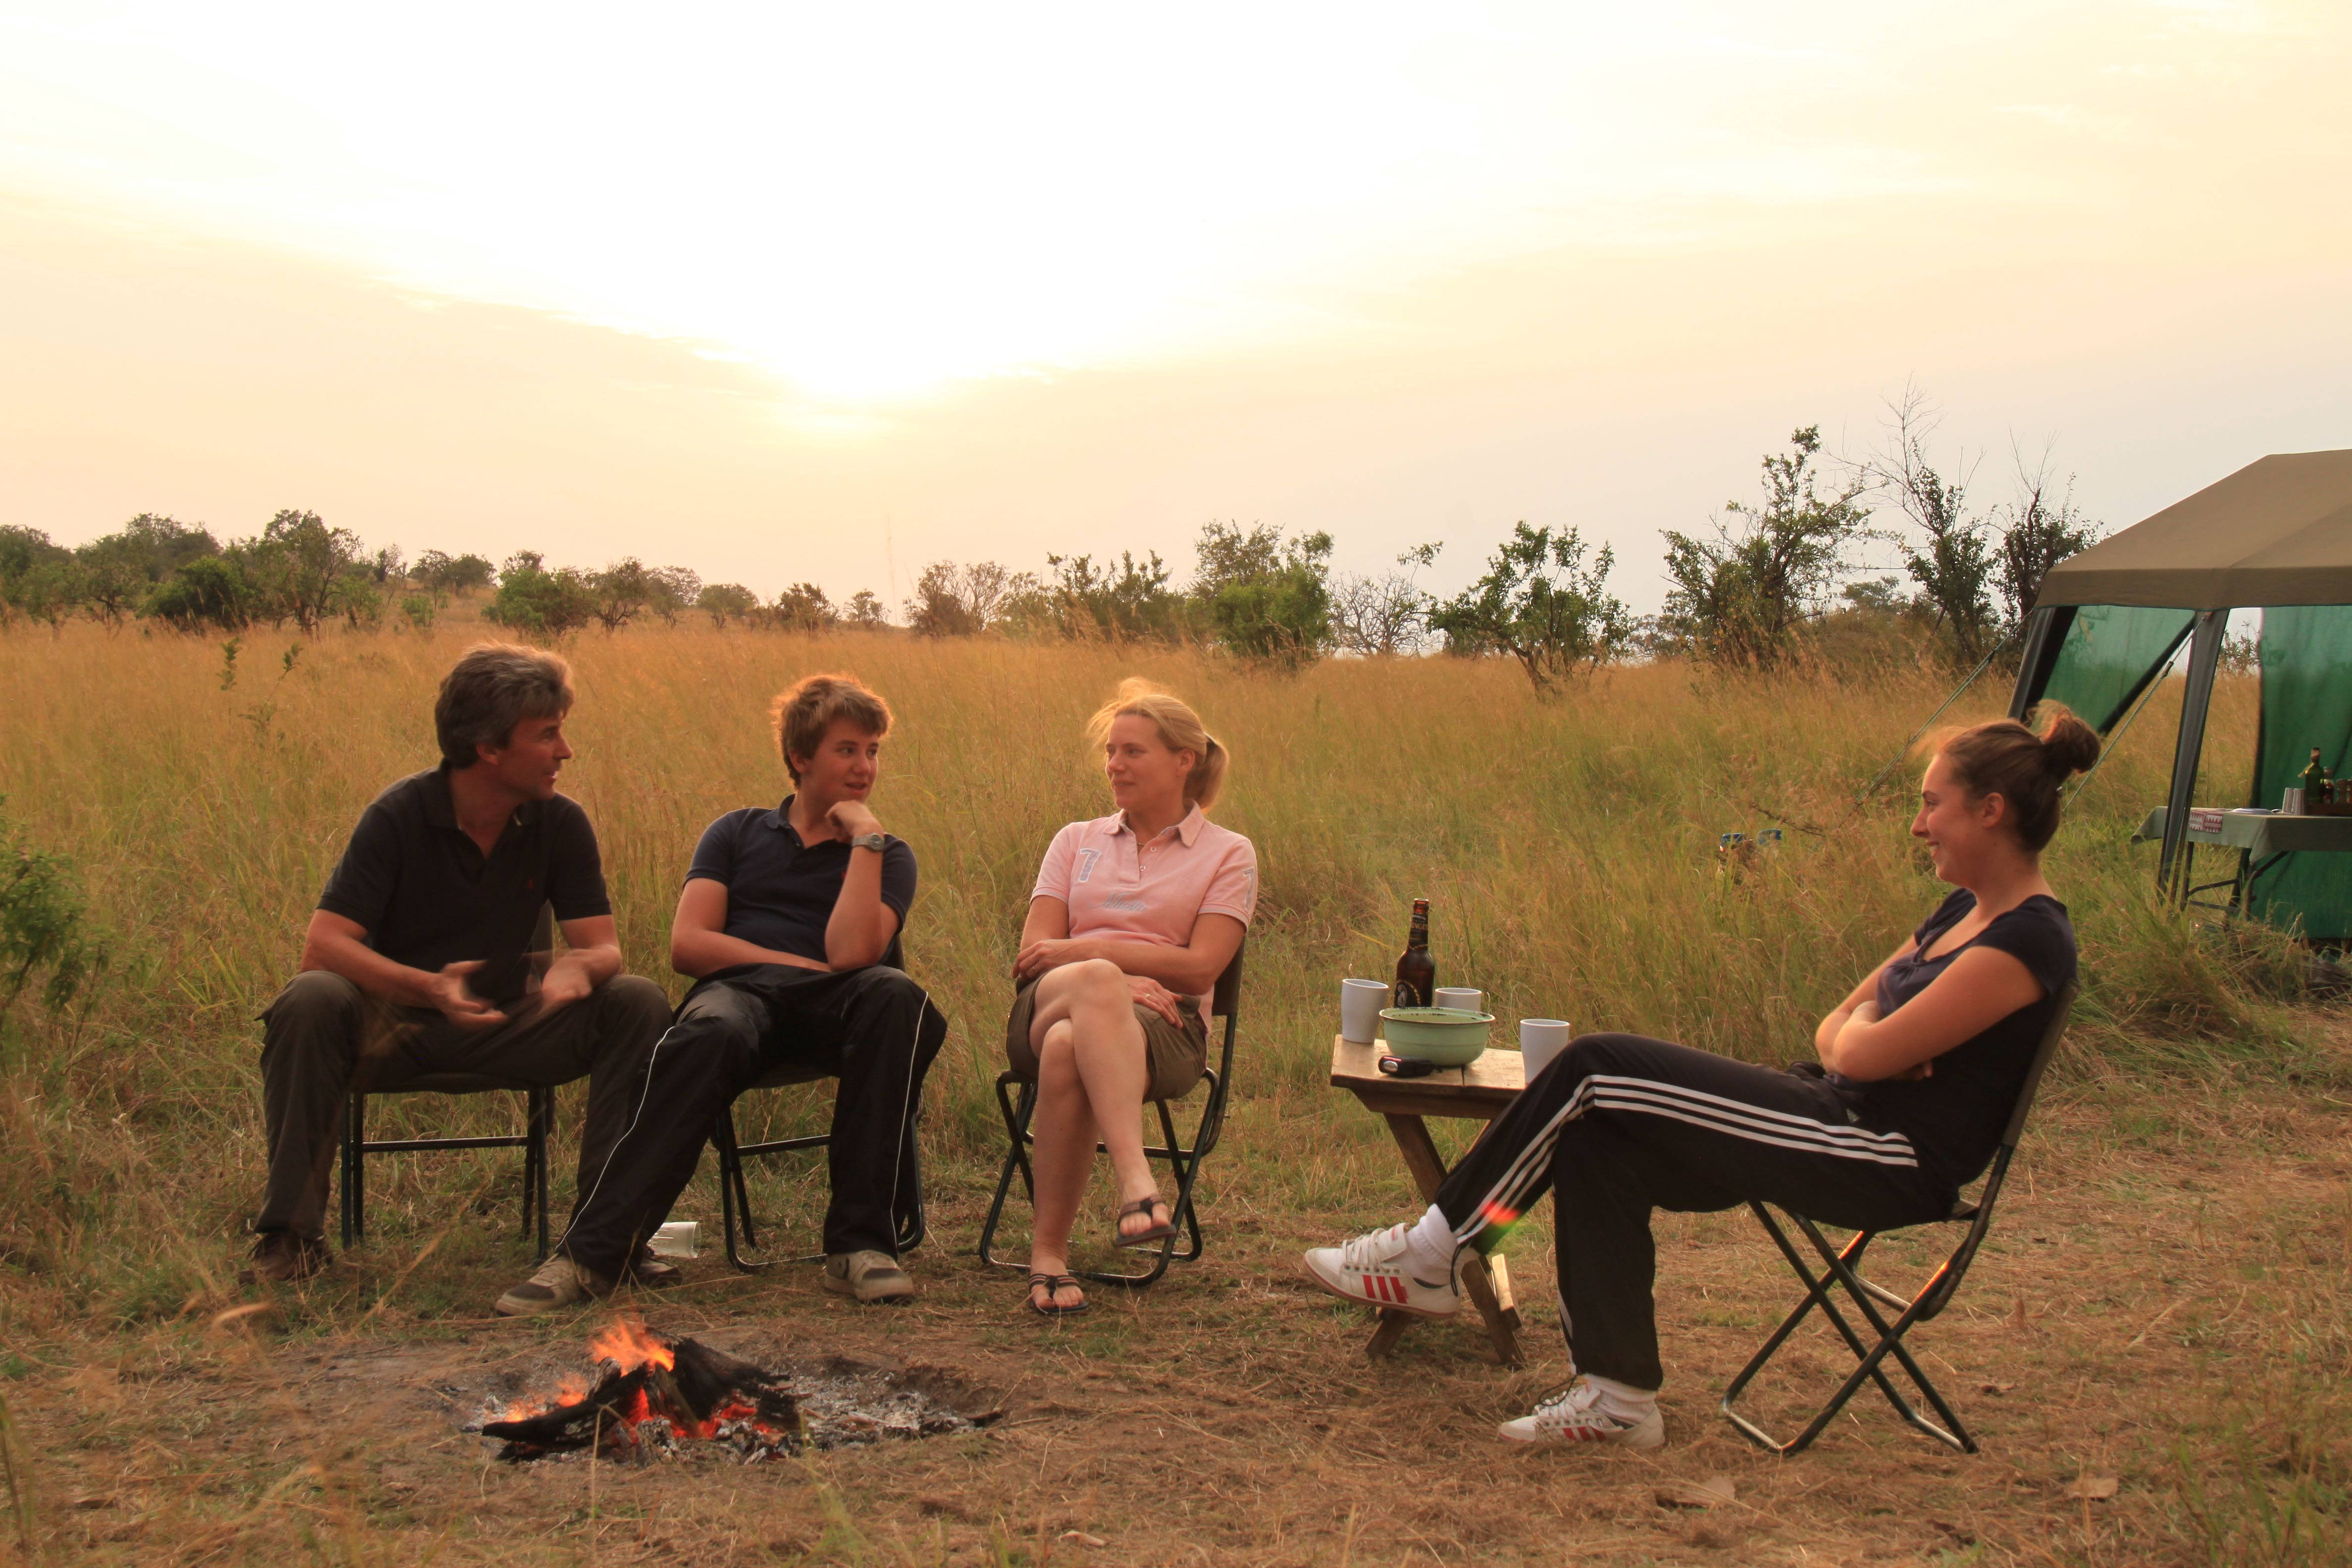 Time to relax after a fantastic gamedrive in Serengeti National Park